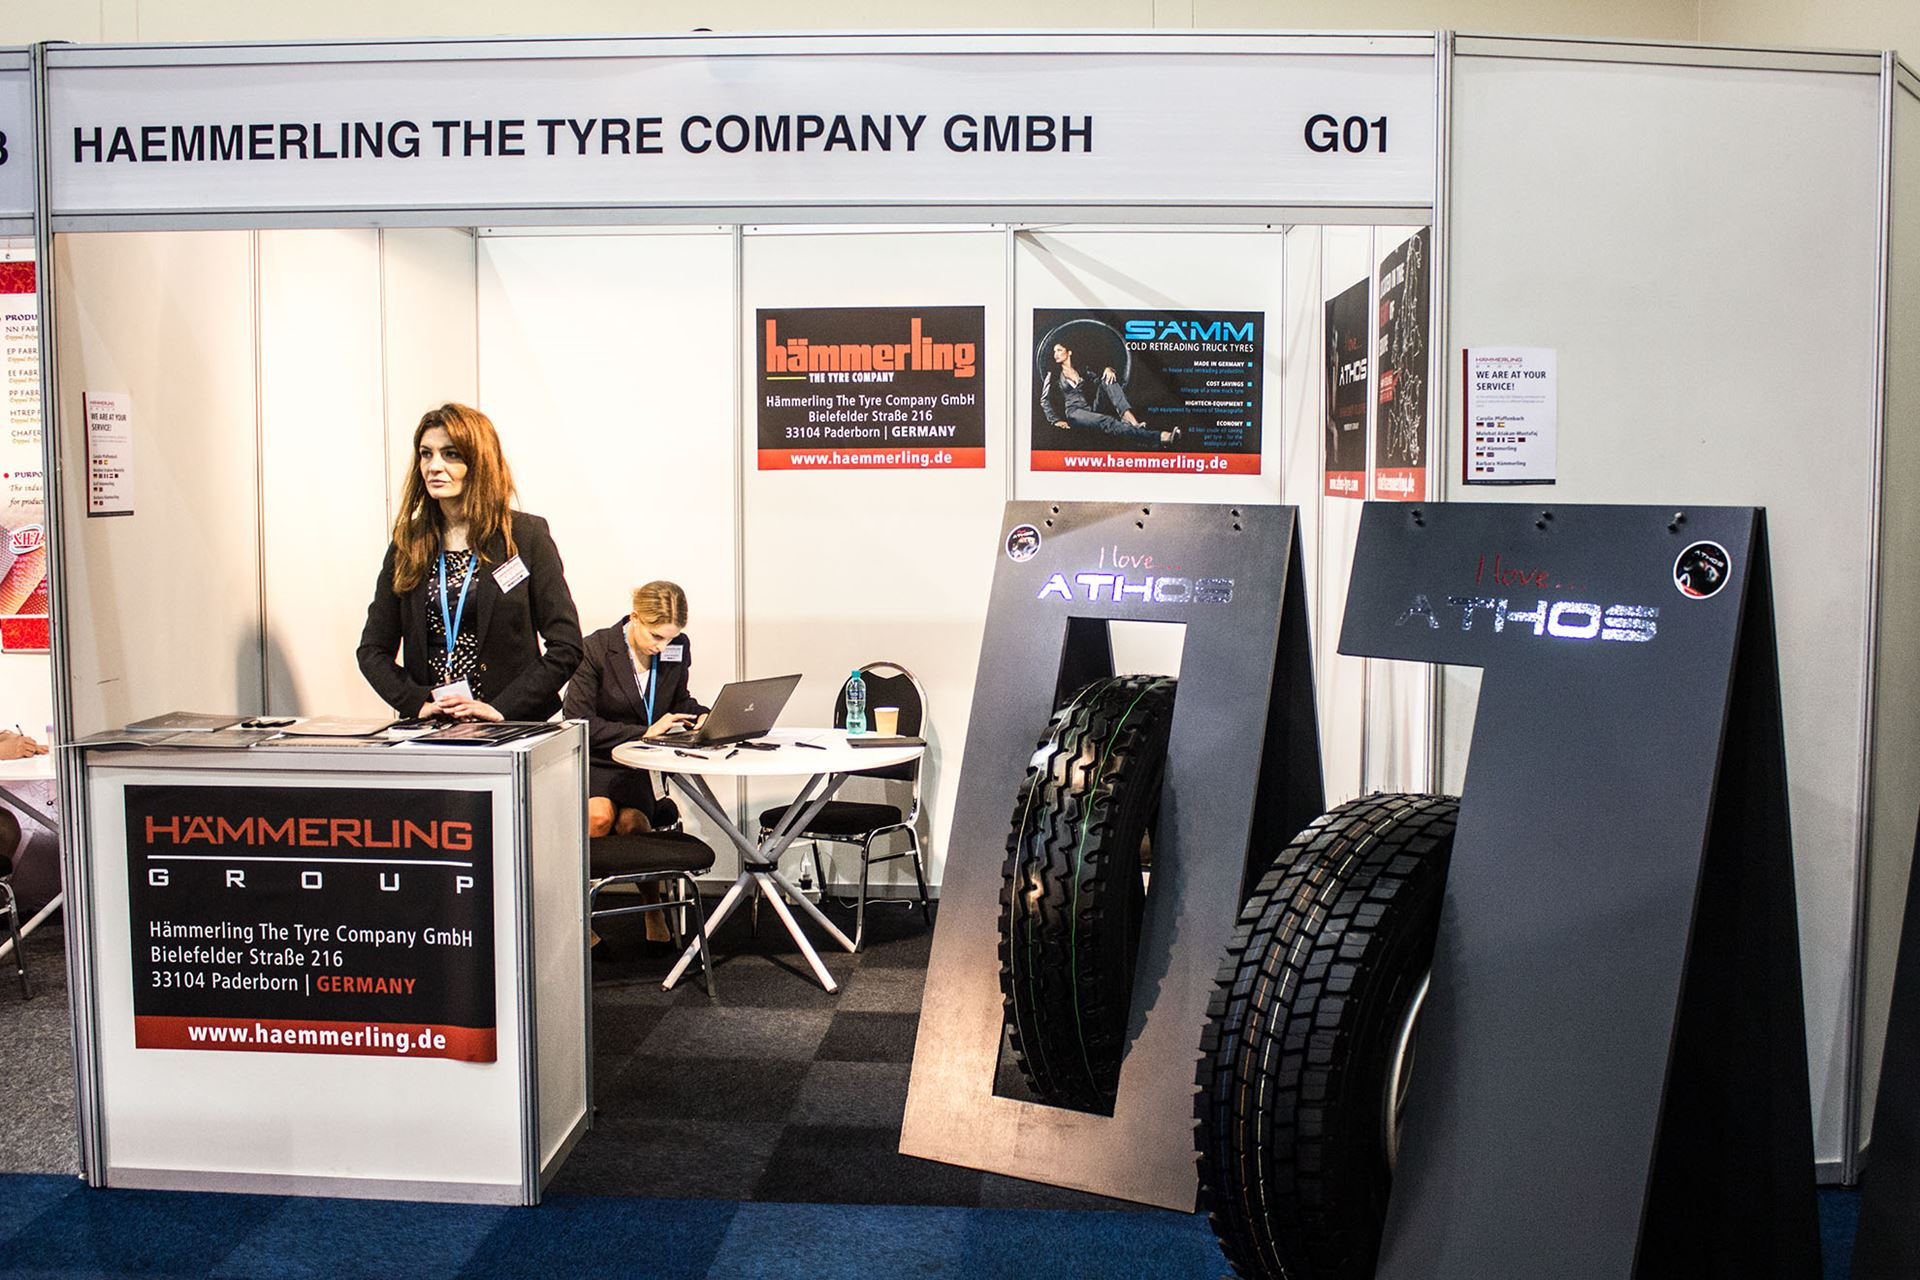 Tyre-Expo-South-Africa-2014-haemmerling-tyres-03